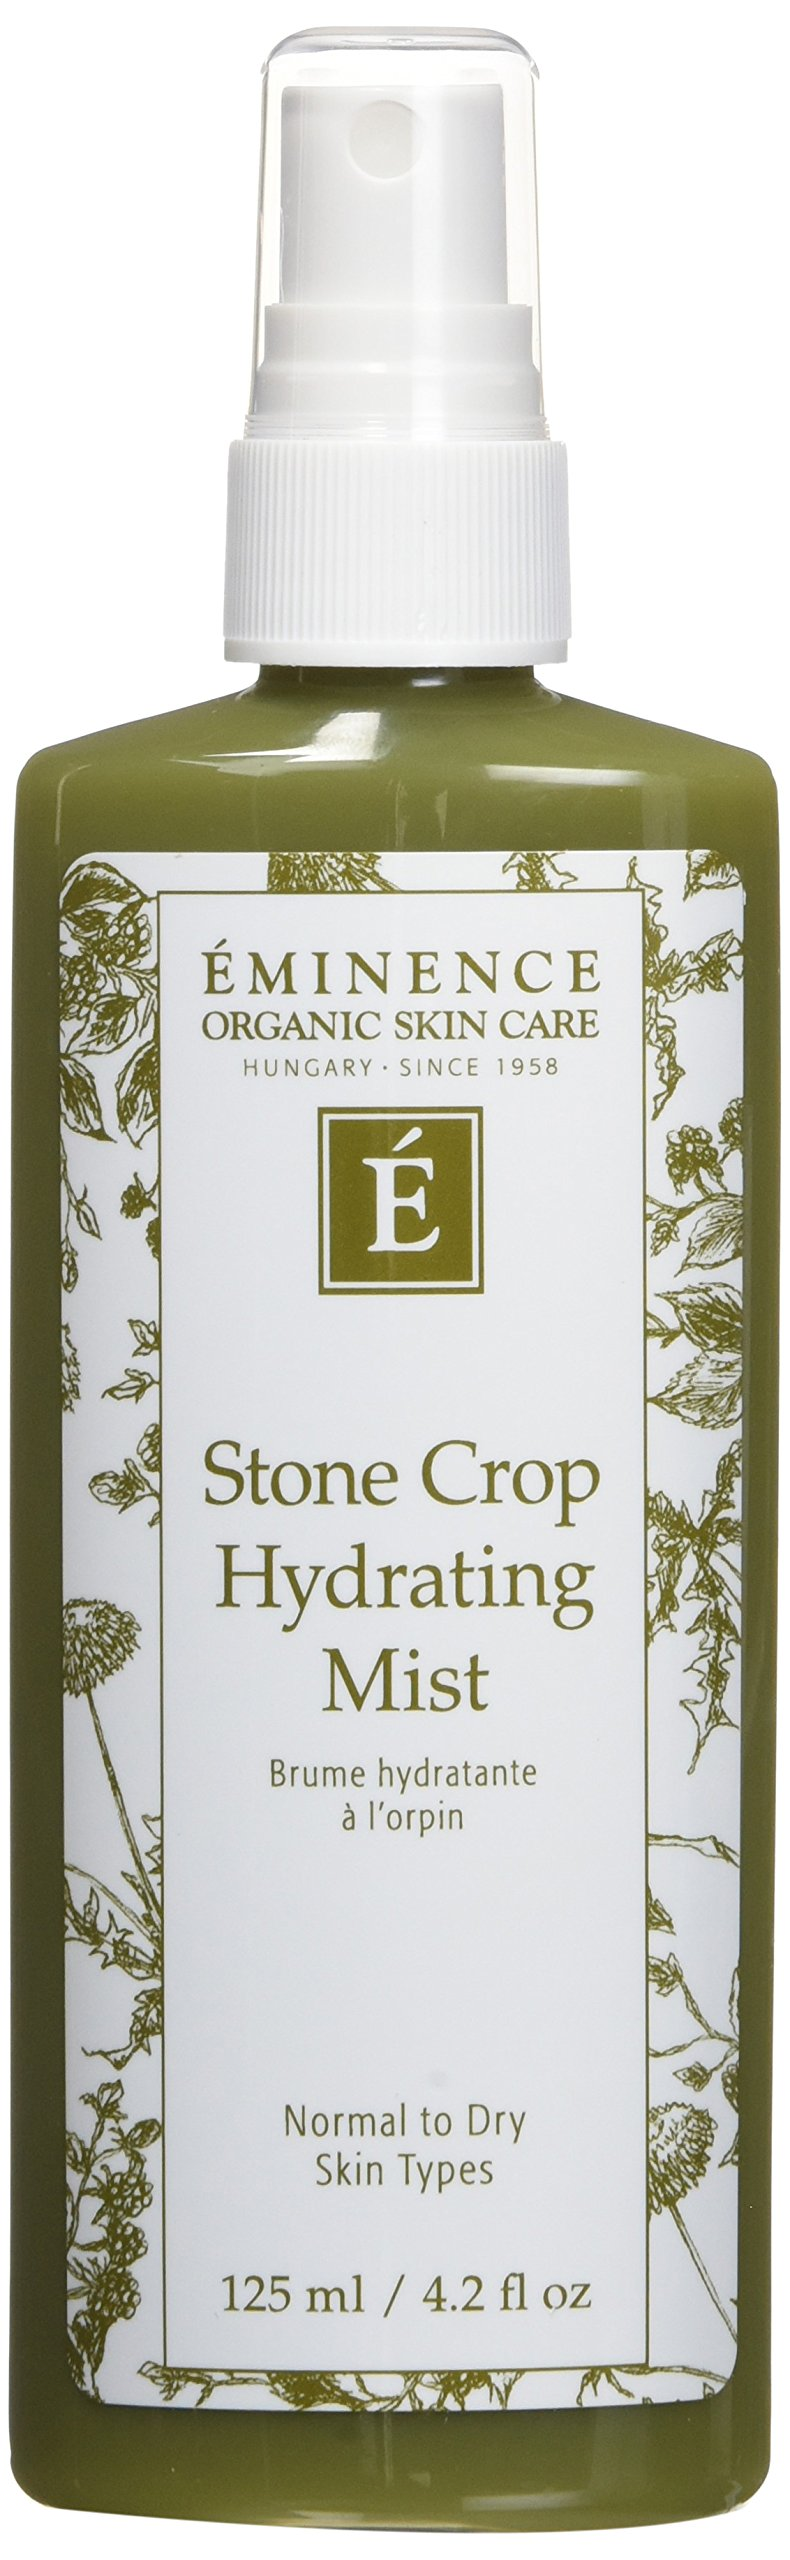 Eminence Organic Skincare Stone Crop Hydrating Mist, 4.2 Ounce by Eminence Organic